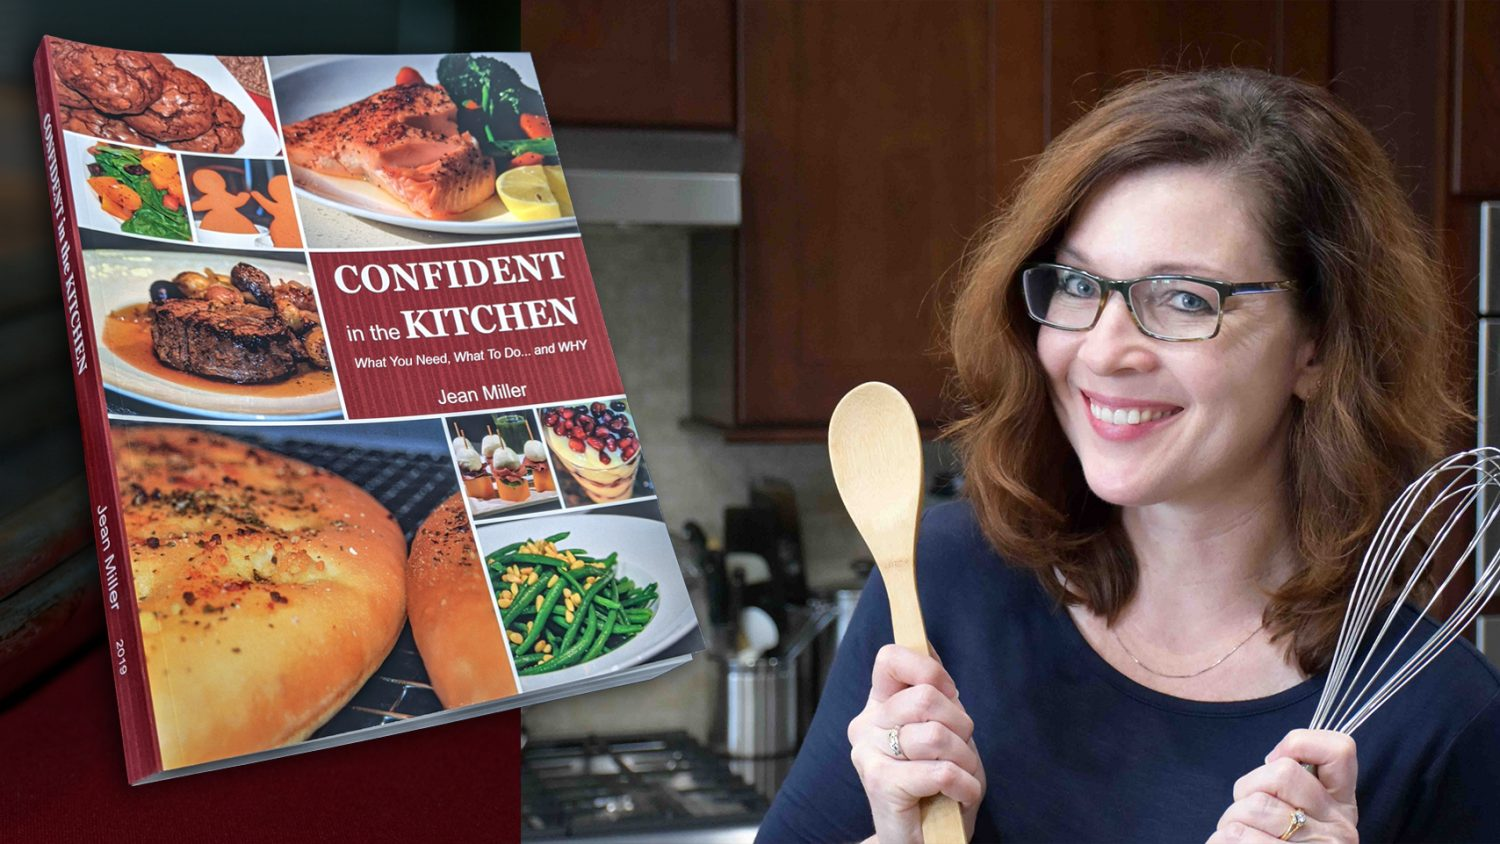 Confident in the Kitchen Cookbook-Jean Miller Recipes